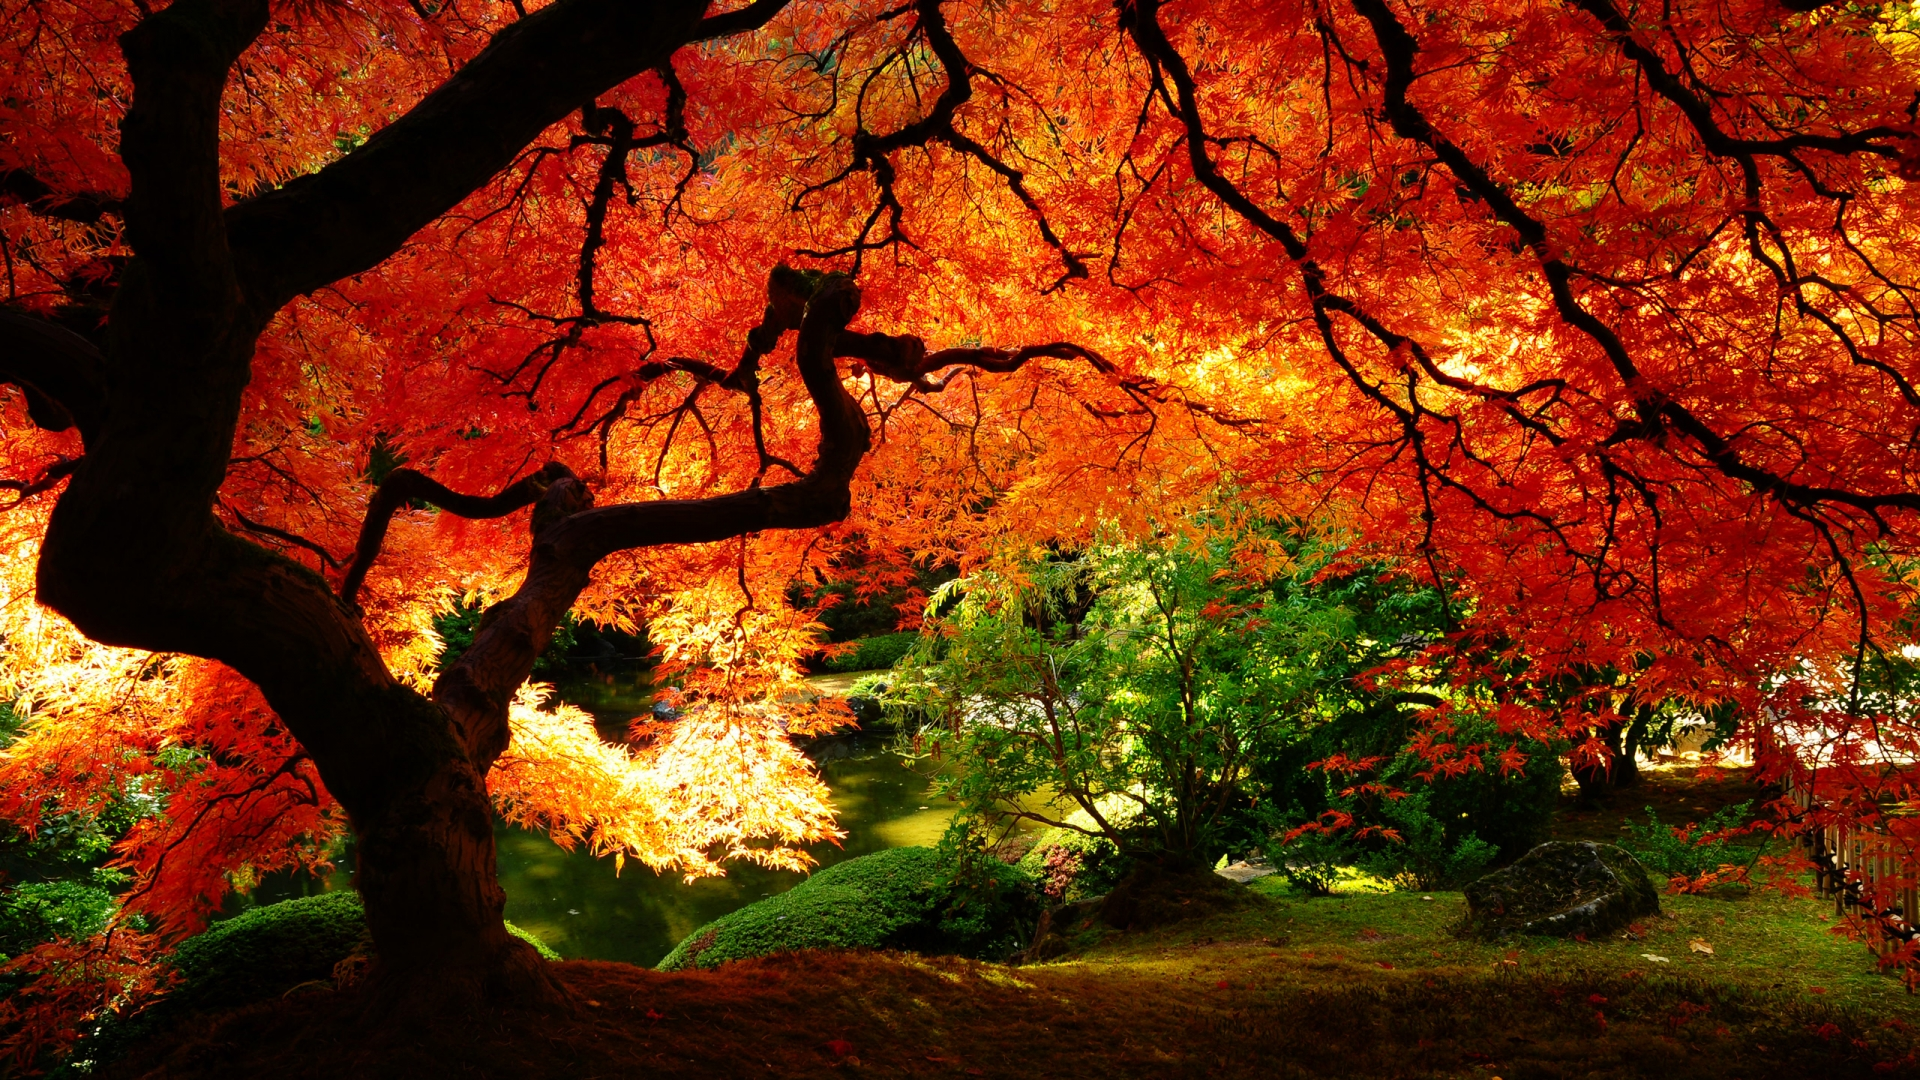 77] Fall Wallpapers For Desktop on WallpaperSafari 1920x1080